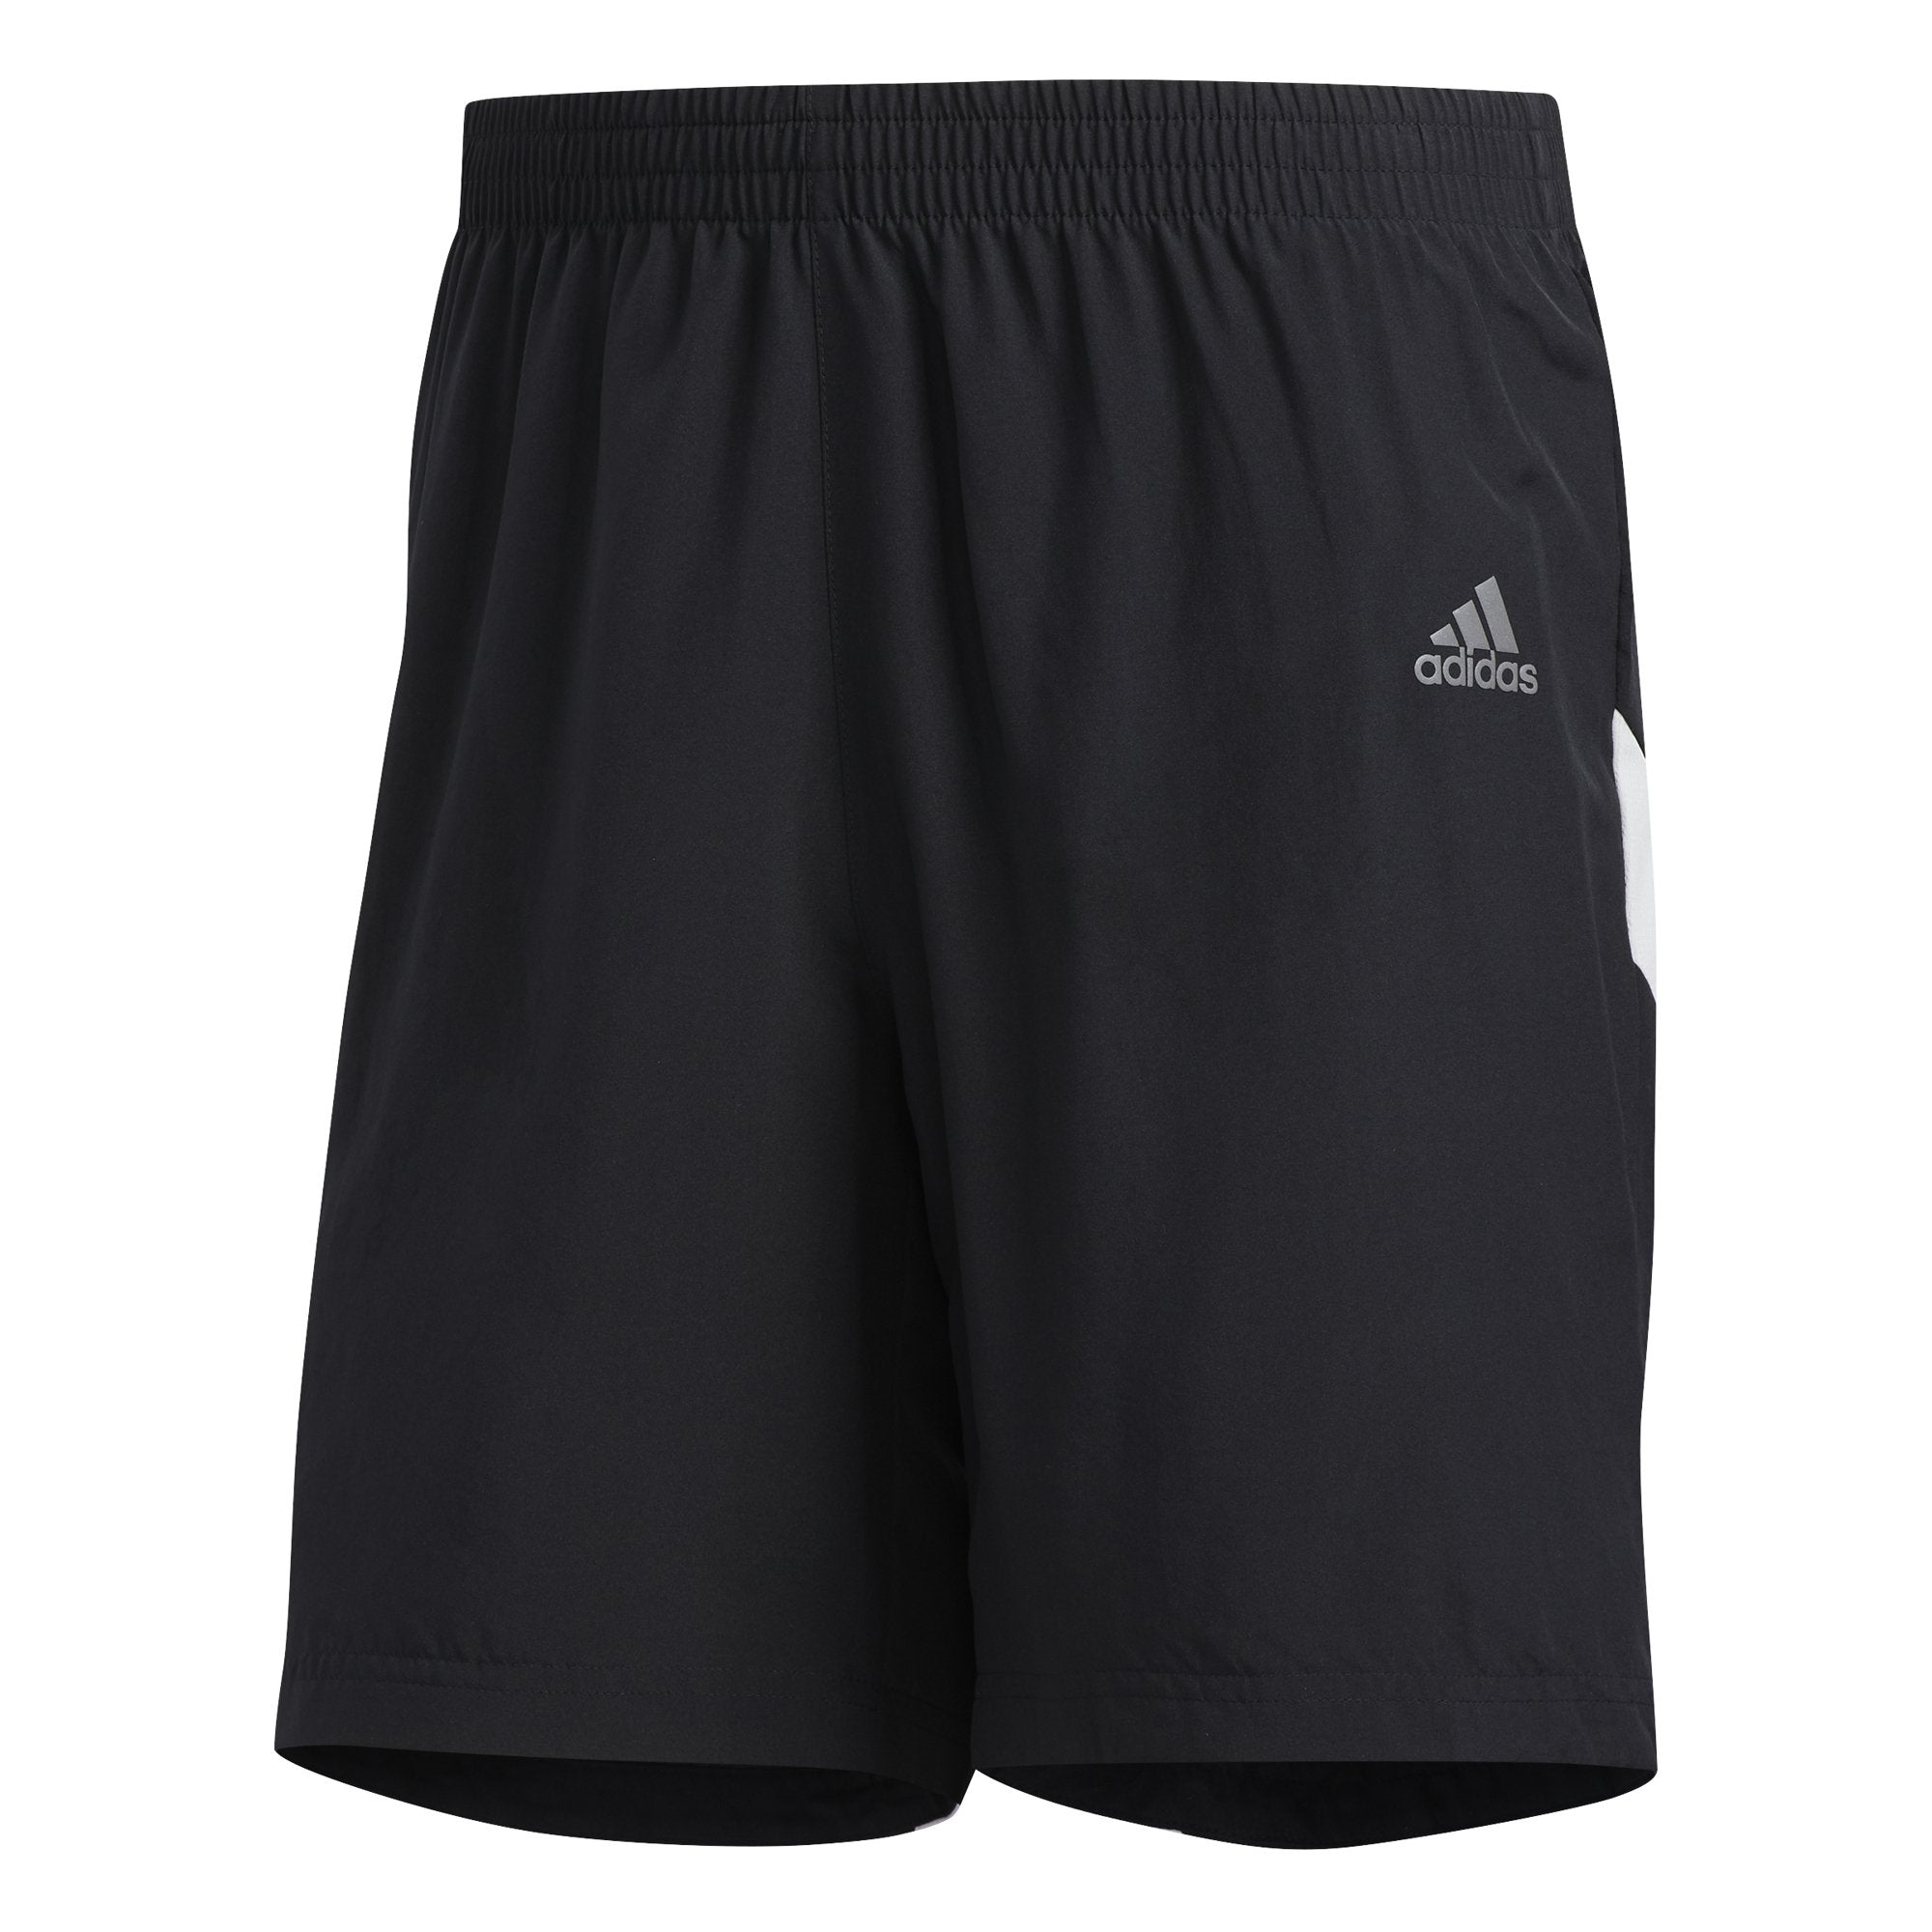 Adidas Mens Own the Run Shorts - Black/Grey SP-APPARELSHORTS-MENS Adidas